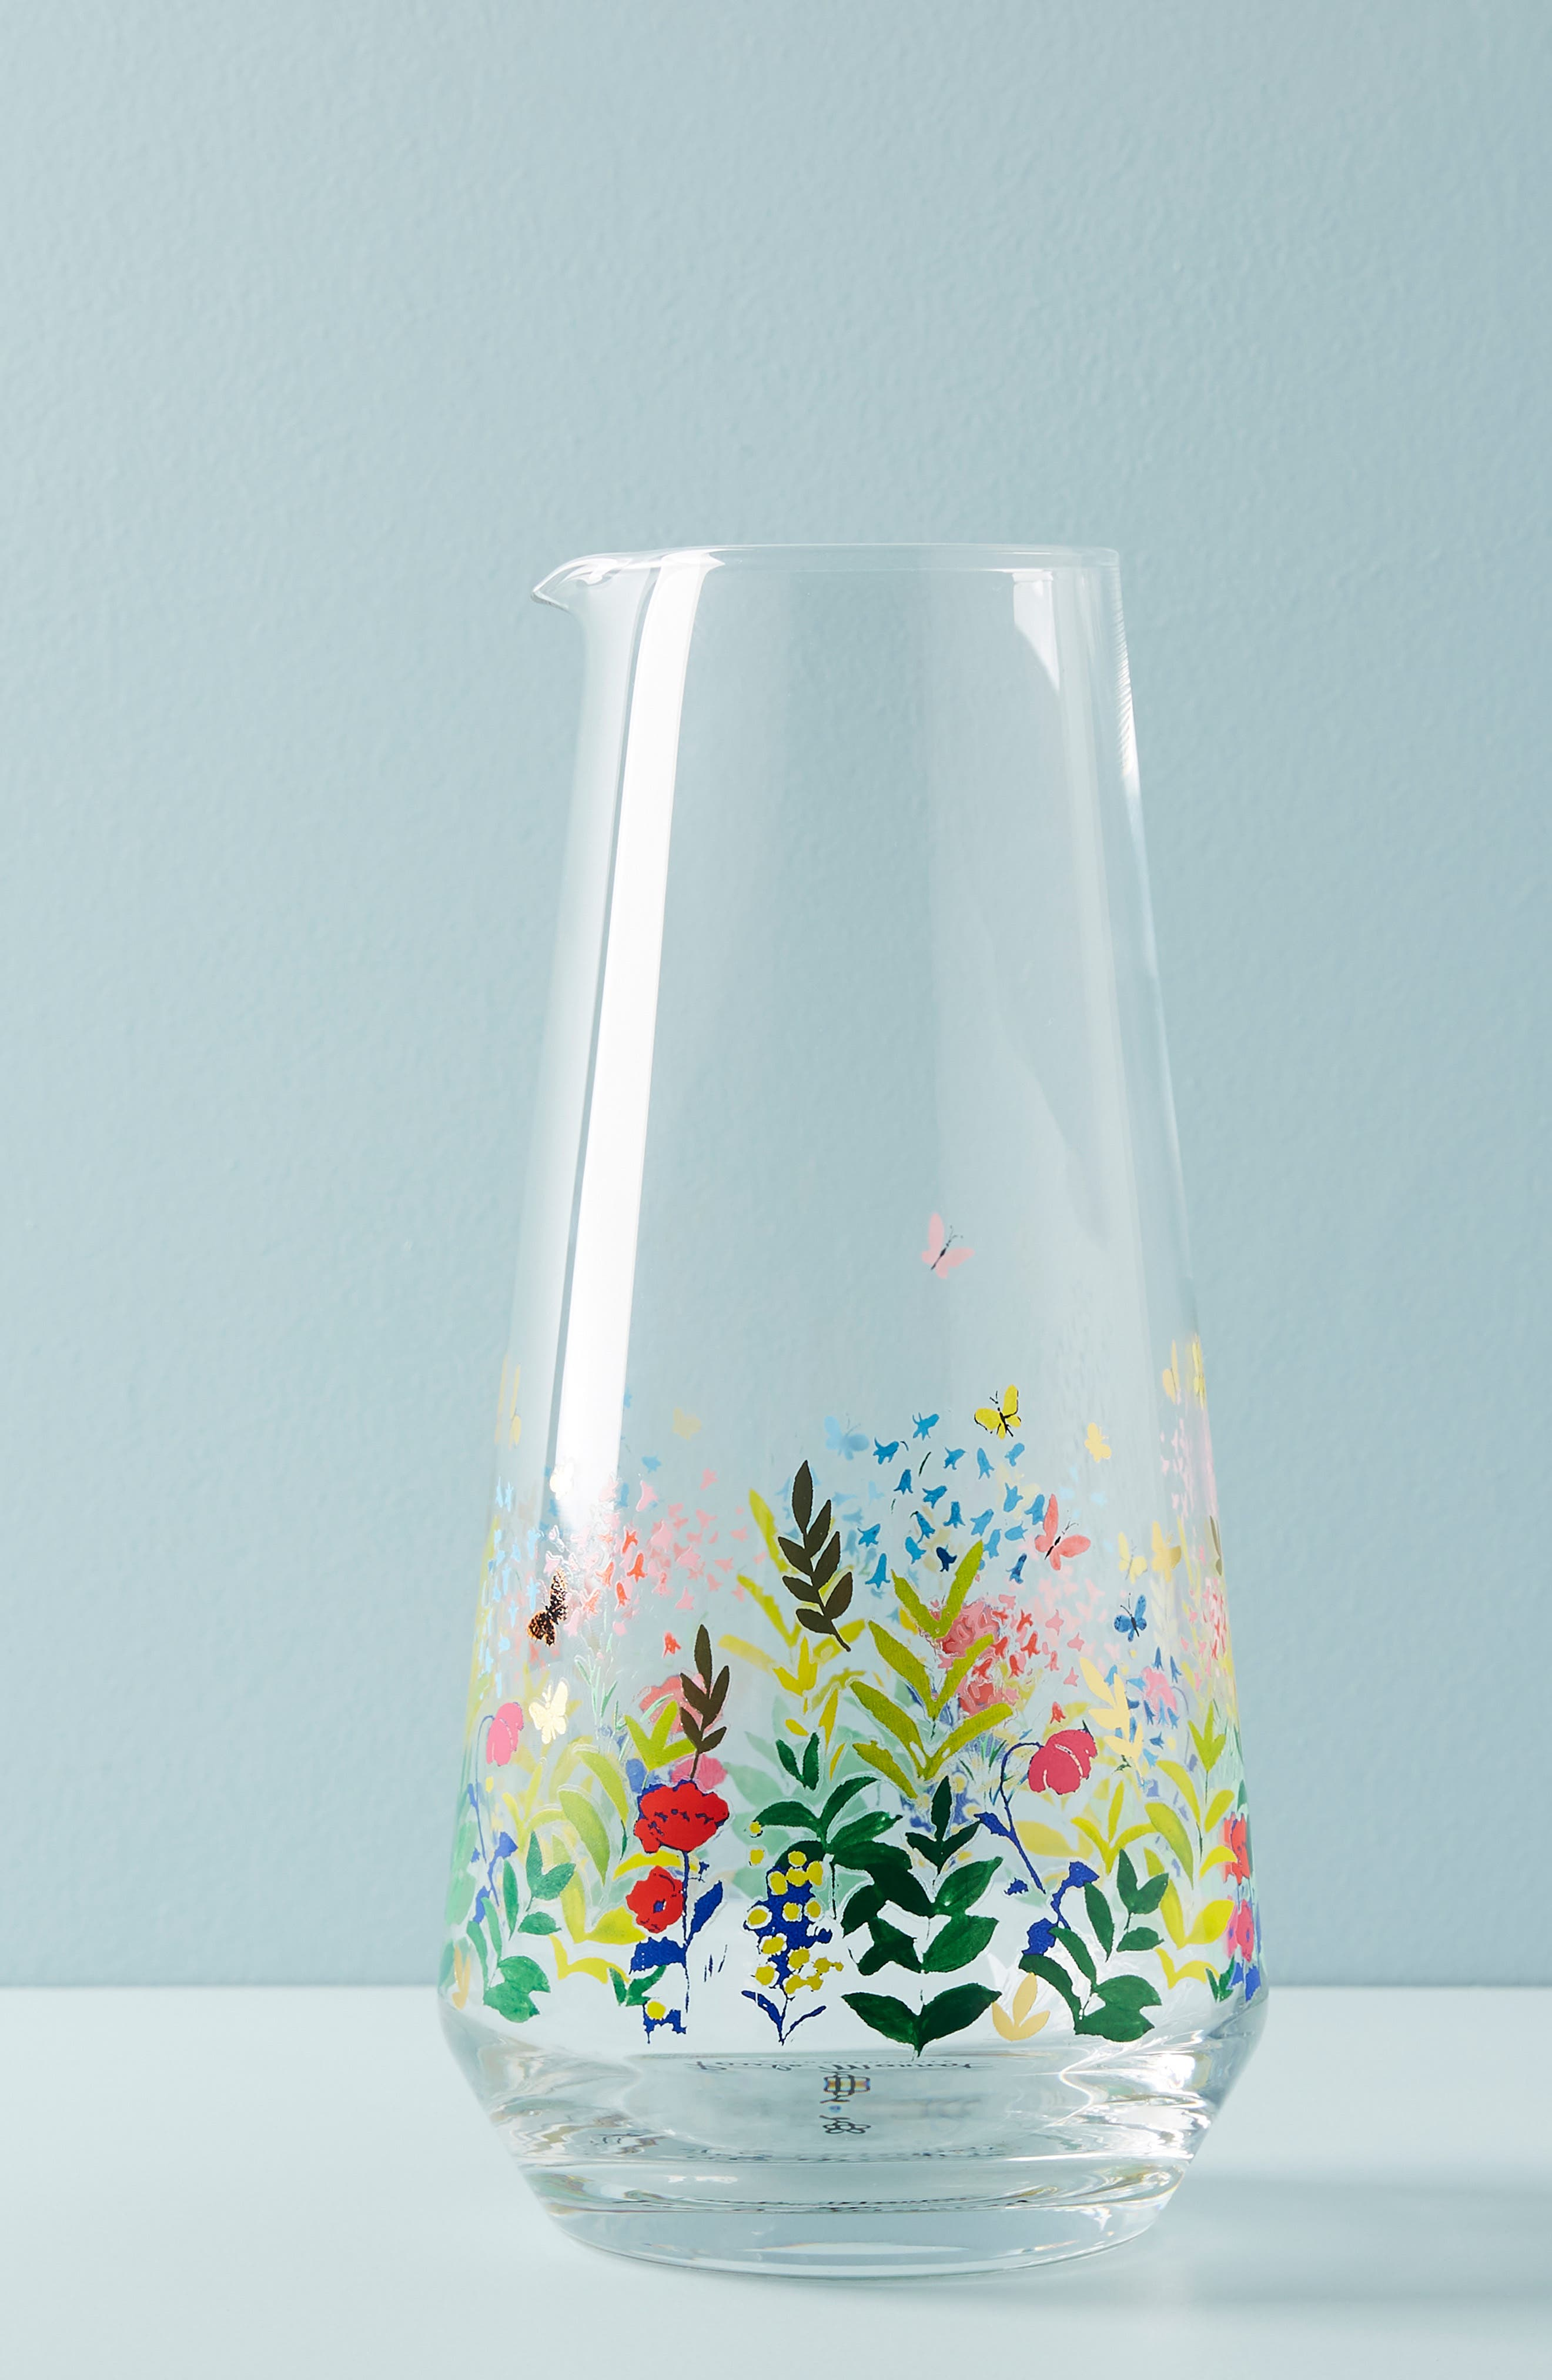 ANTHROPOLOGIE,                             Paule Marrot Garden Carafe,                             Main thumbnail 1, color,                             CLEAR